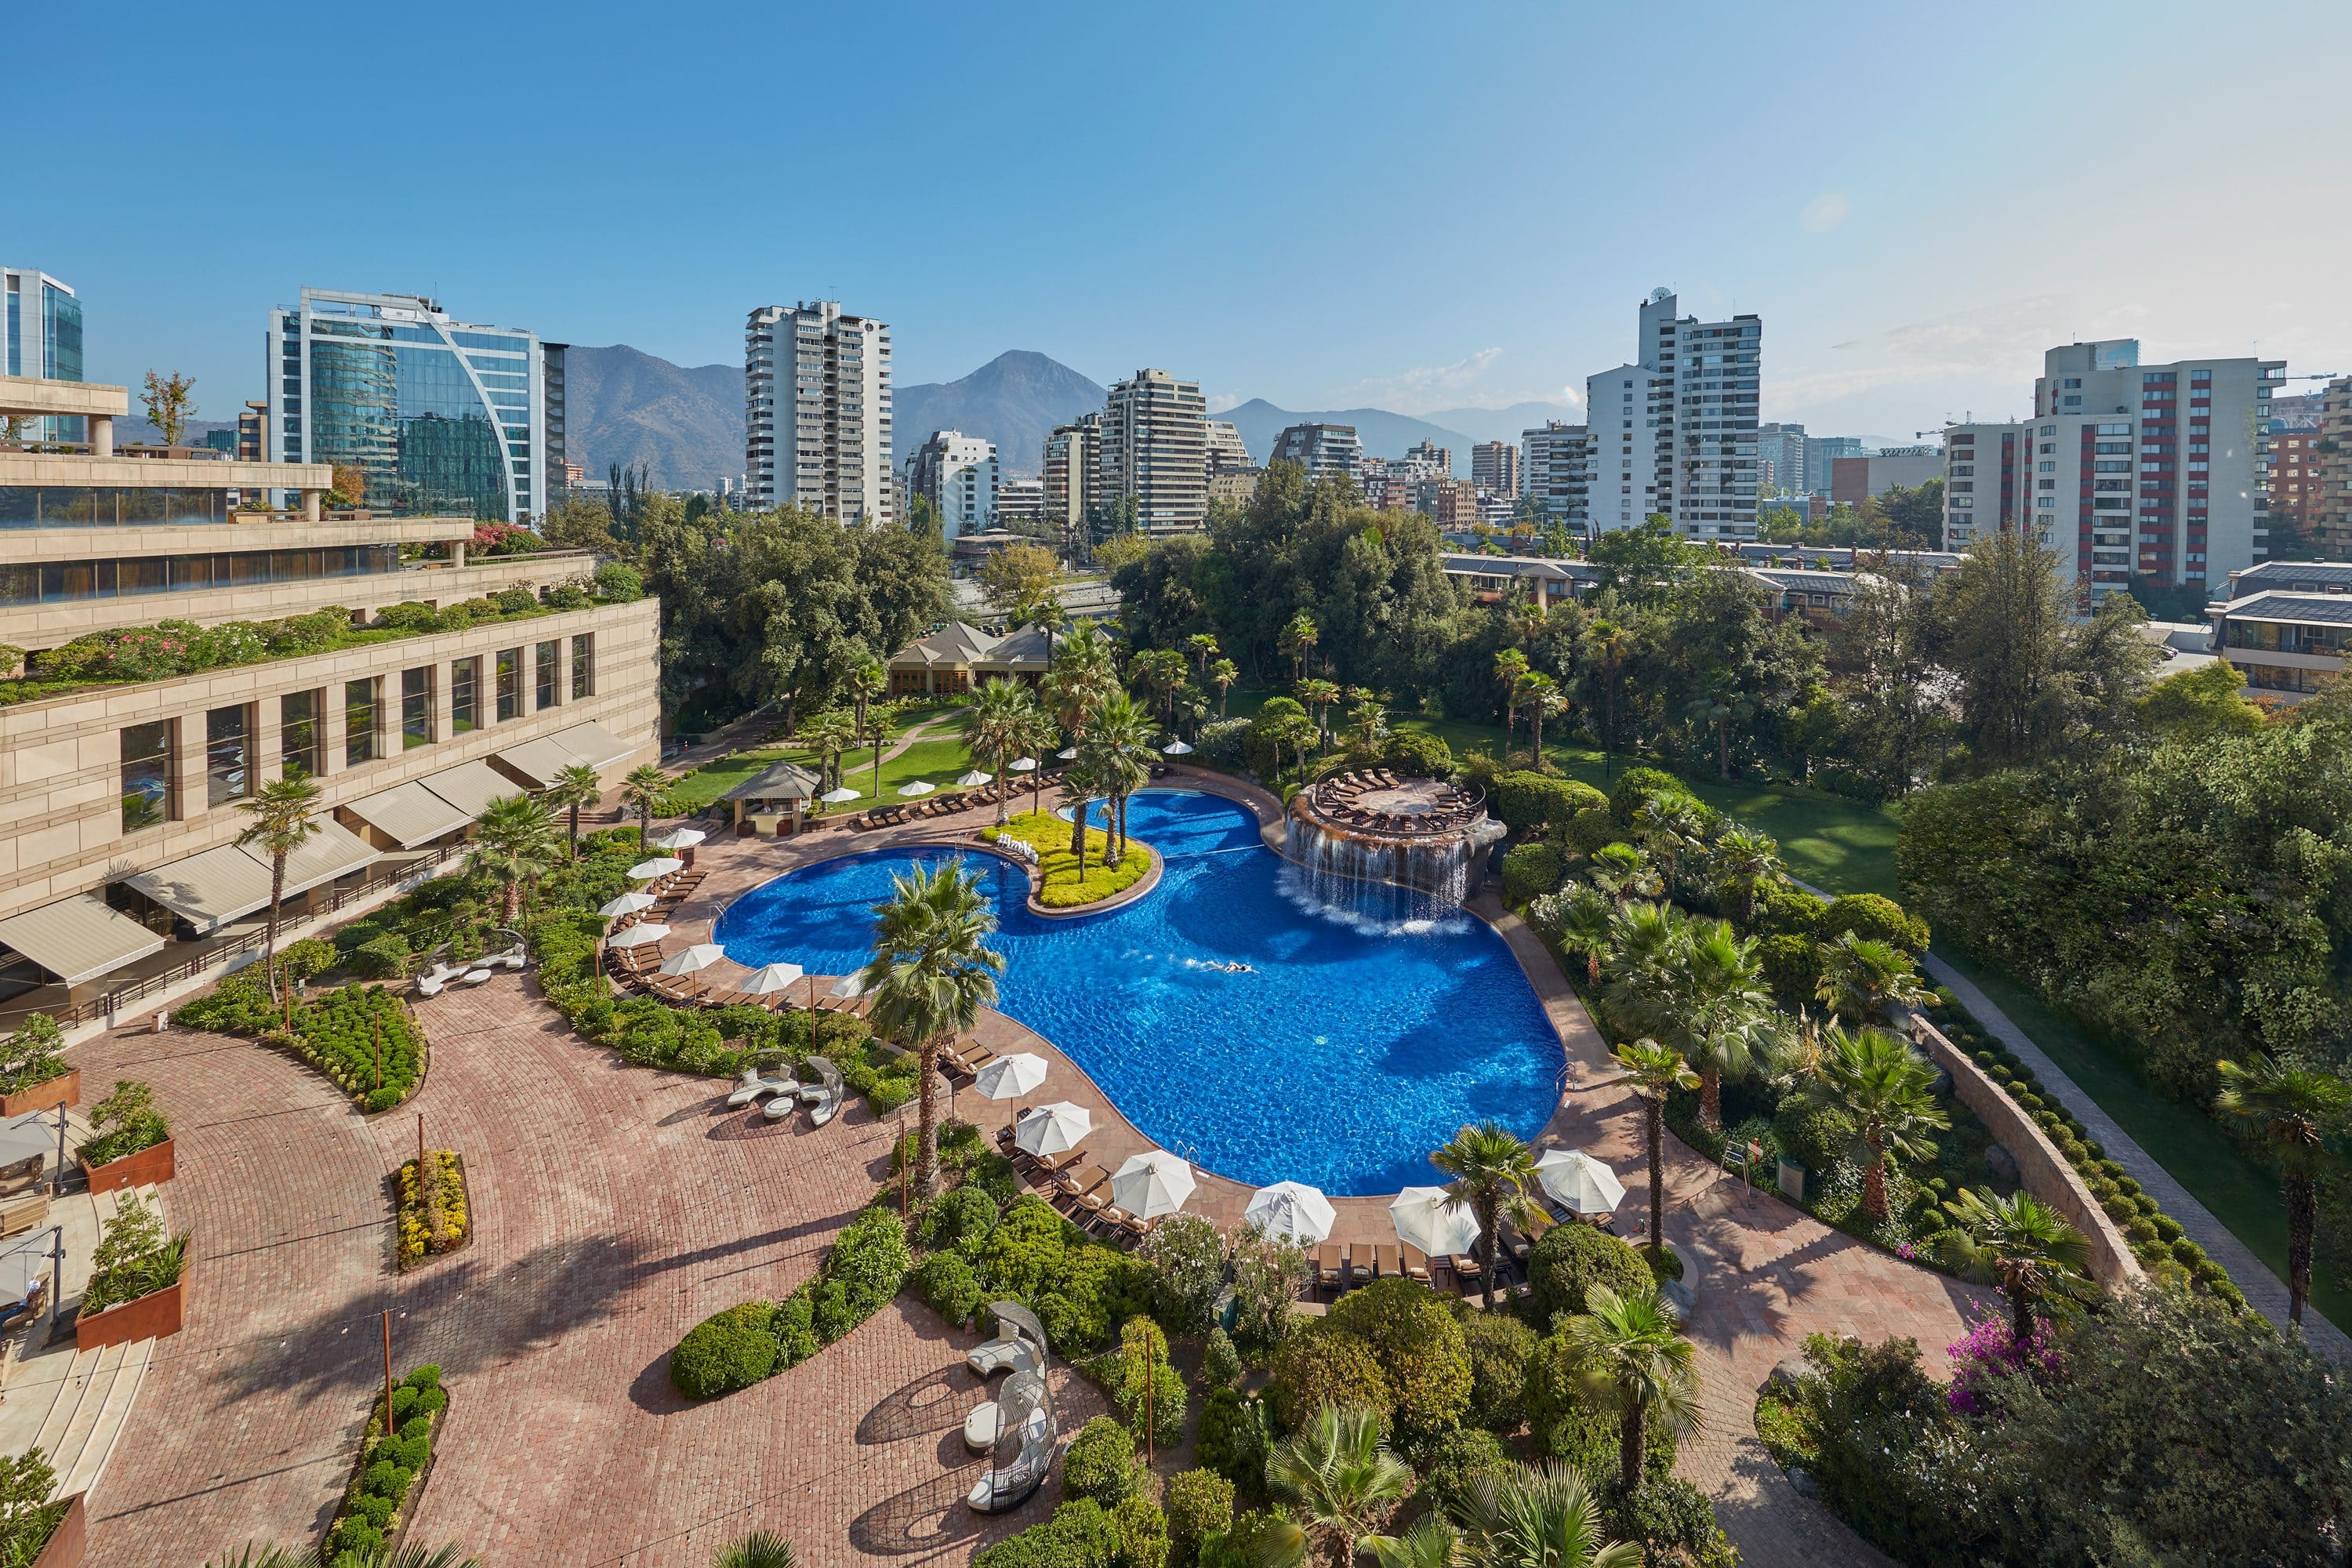 Pool and hotel in Santiago